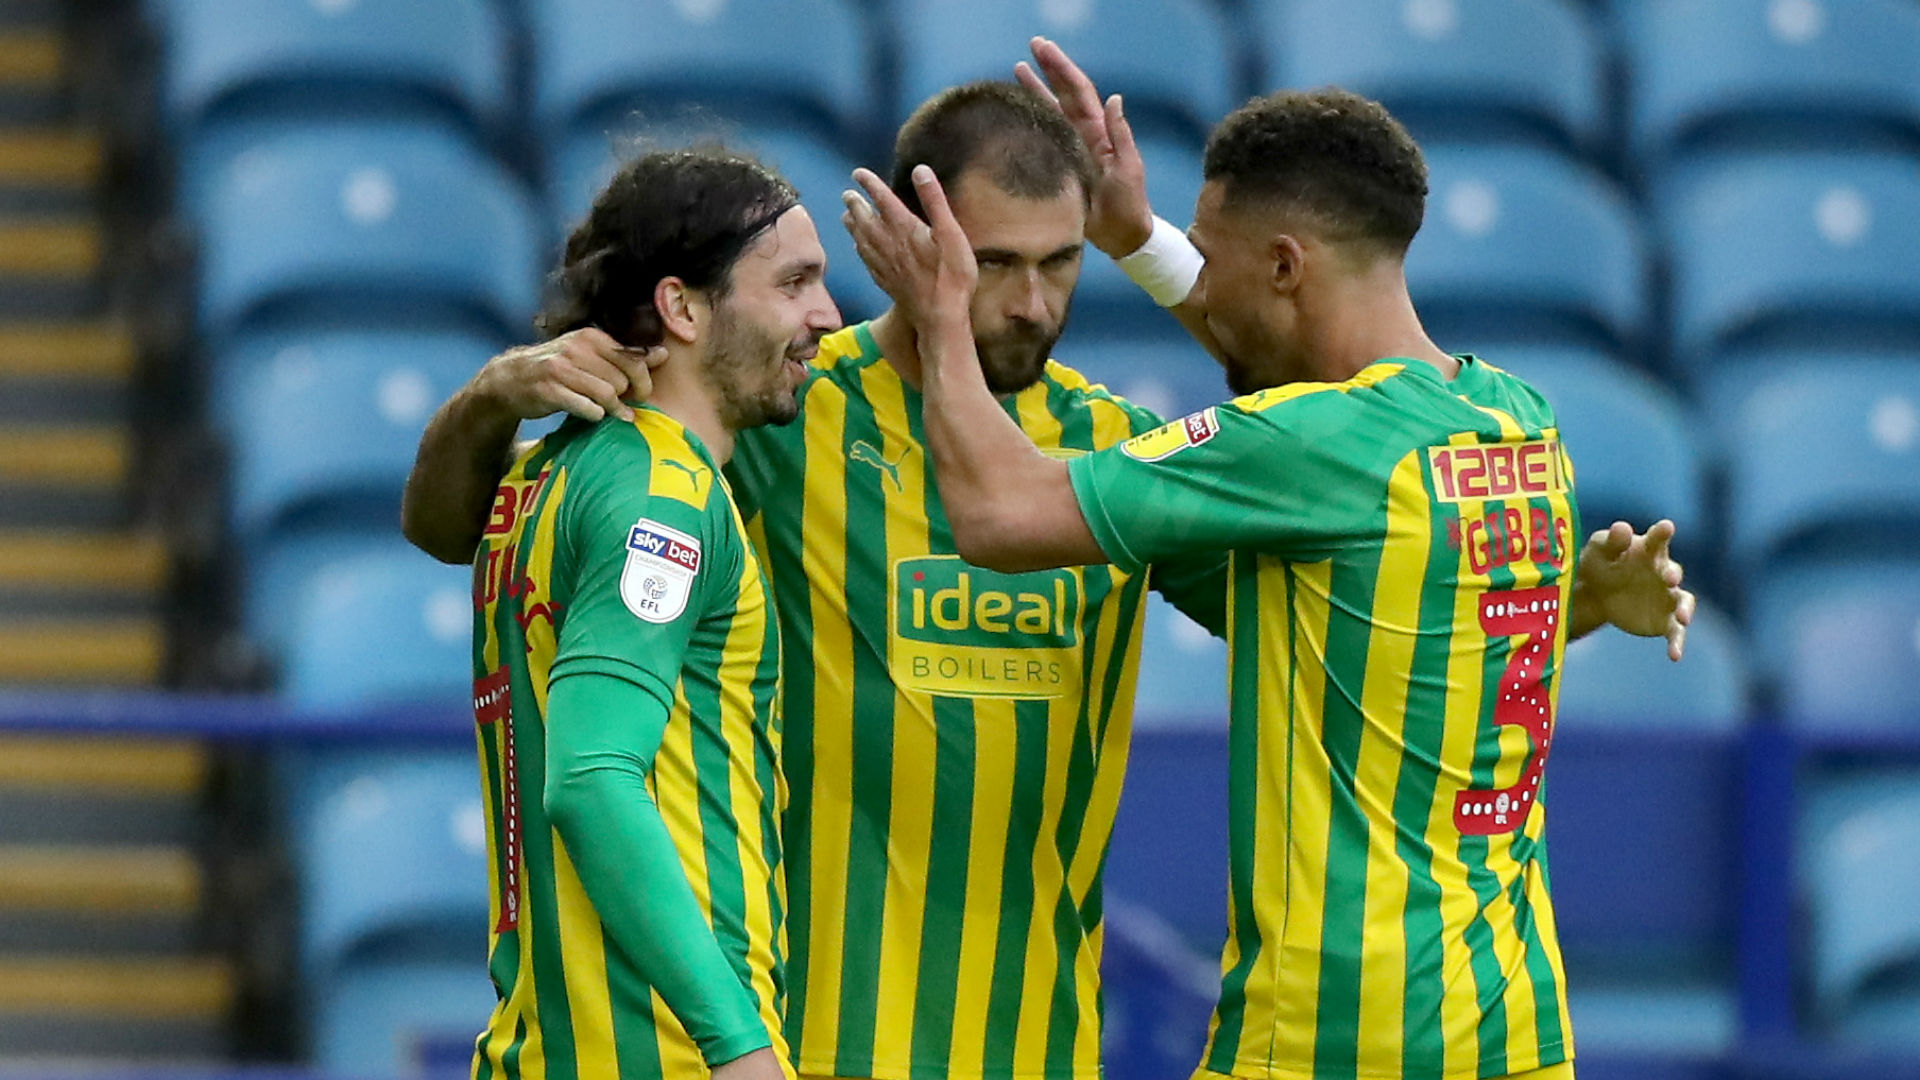 Championship: Baggies close gap on Leeds, Rooney boosts Derby's play-off push